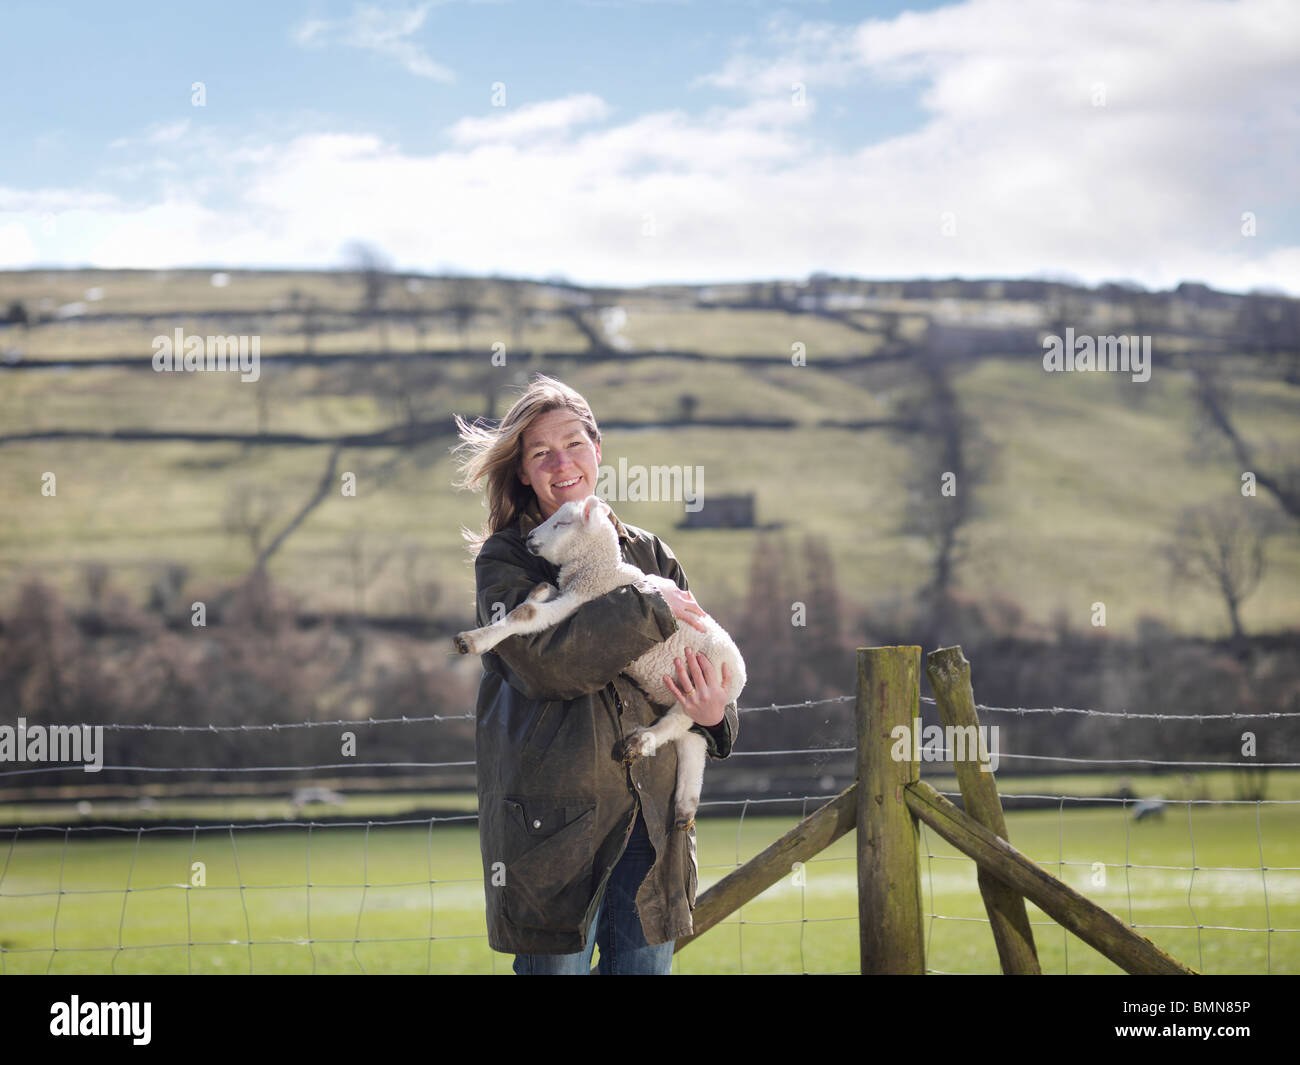 Woman holding lamb in front of fence Stock Photo